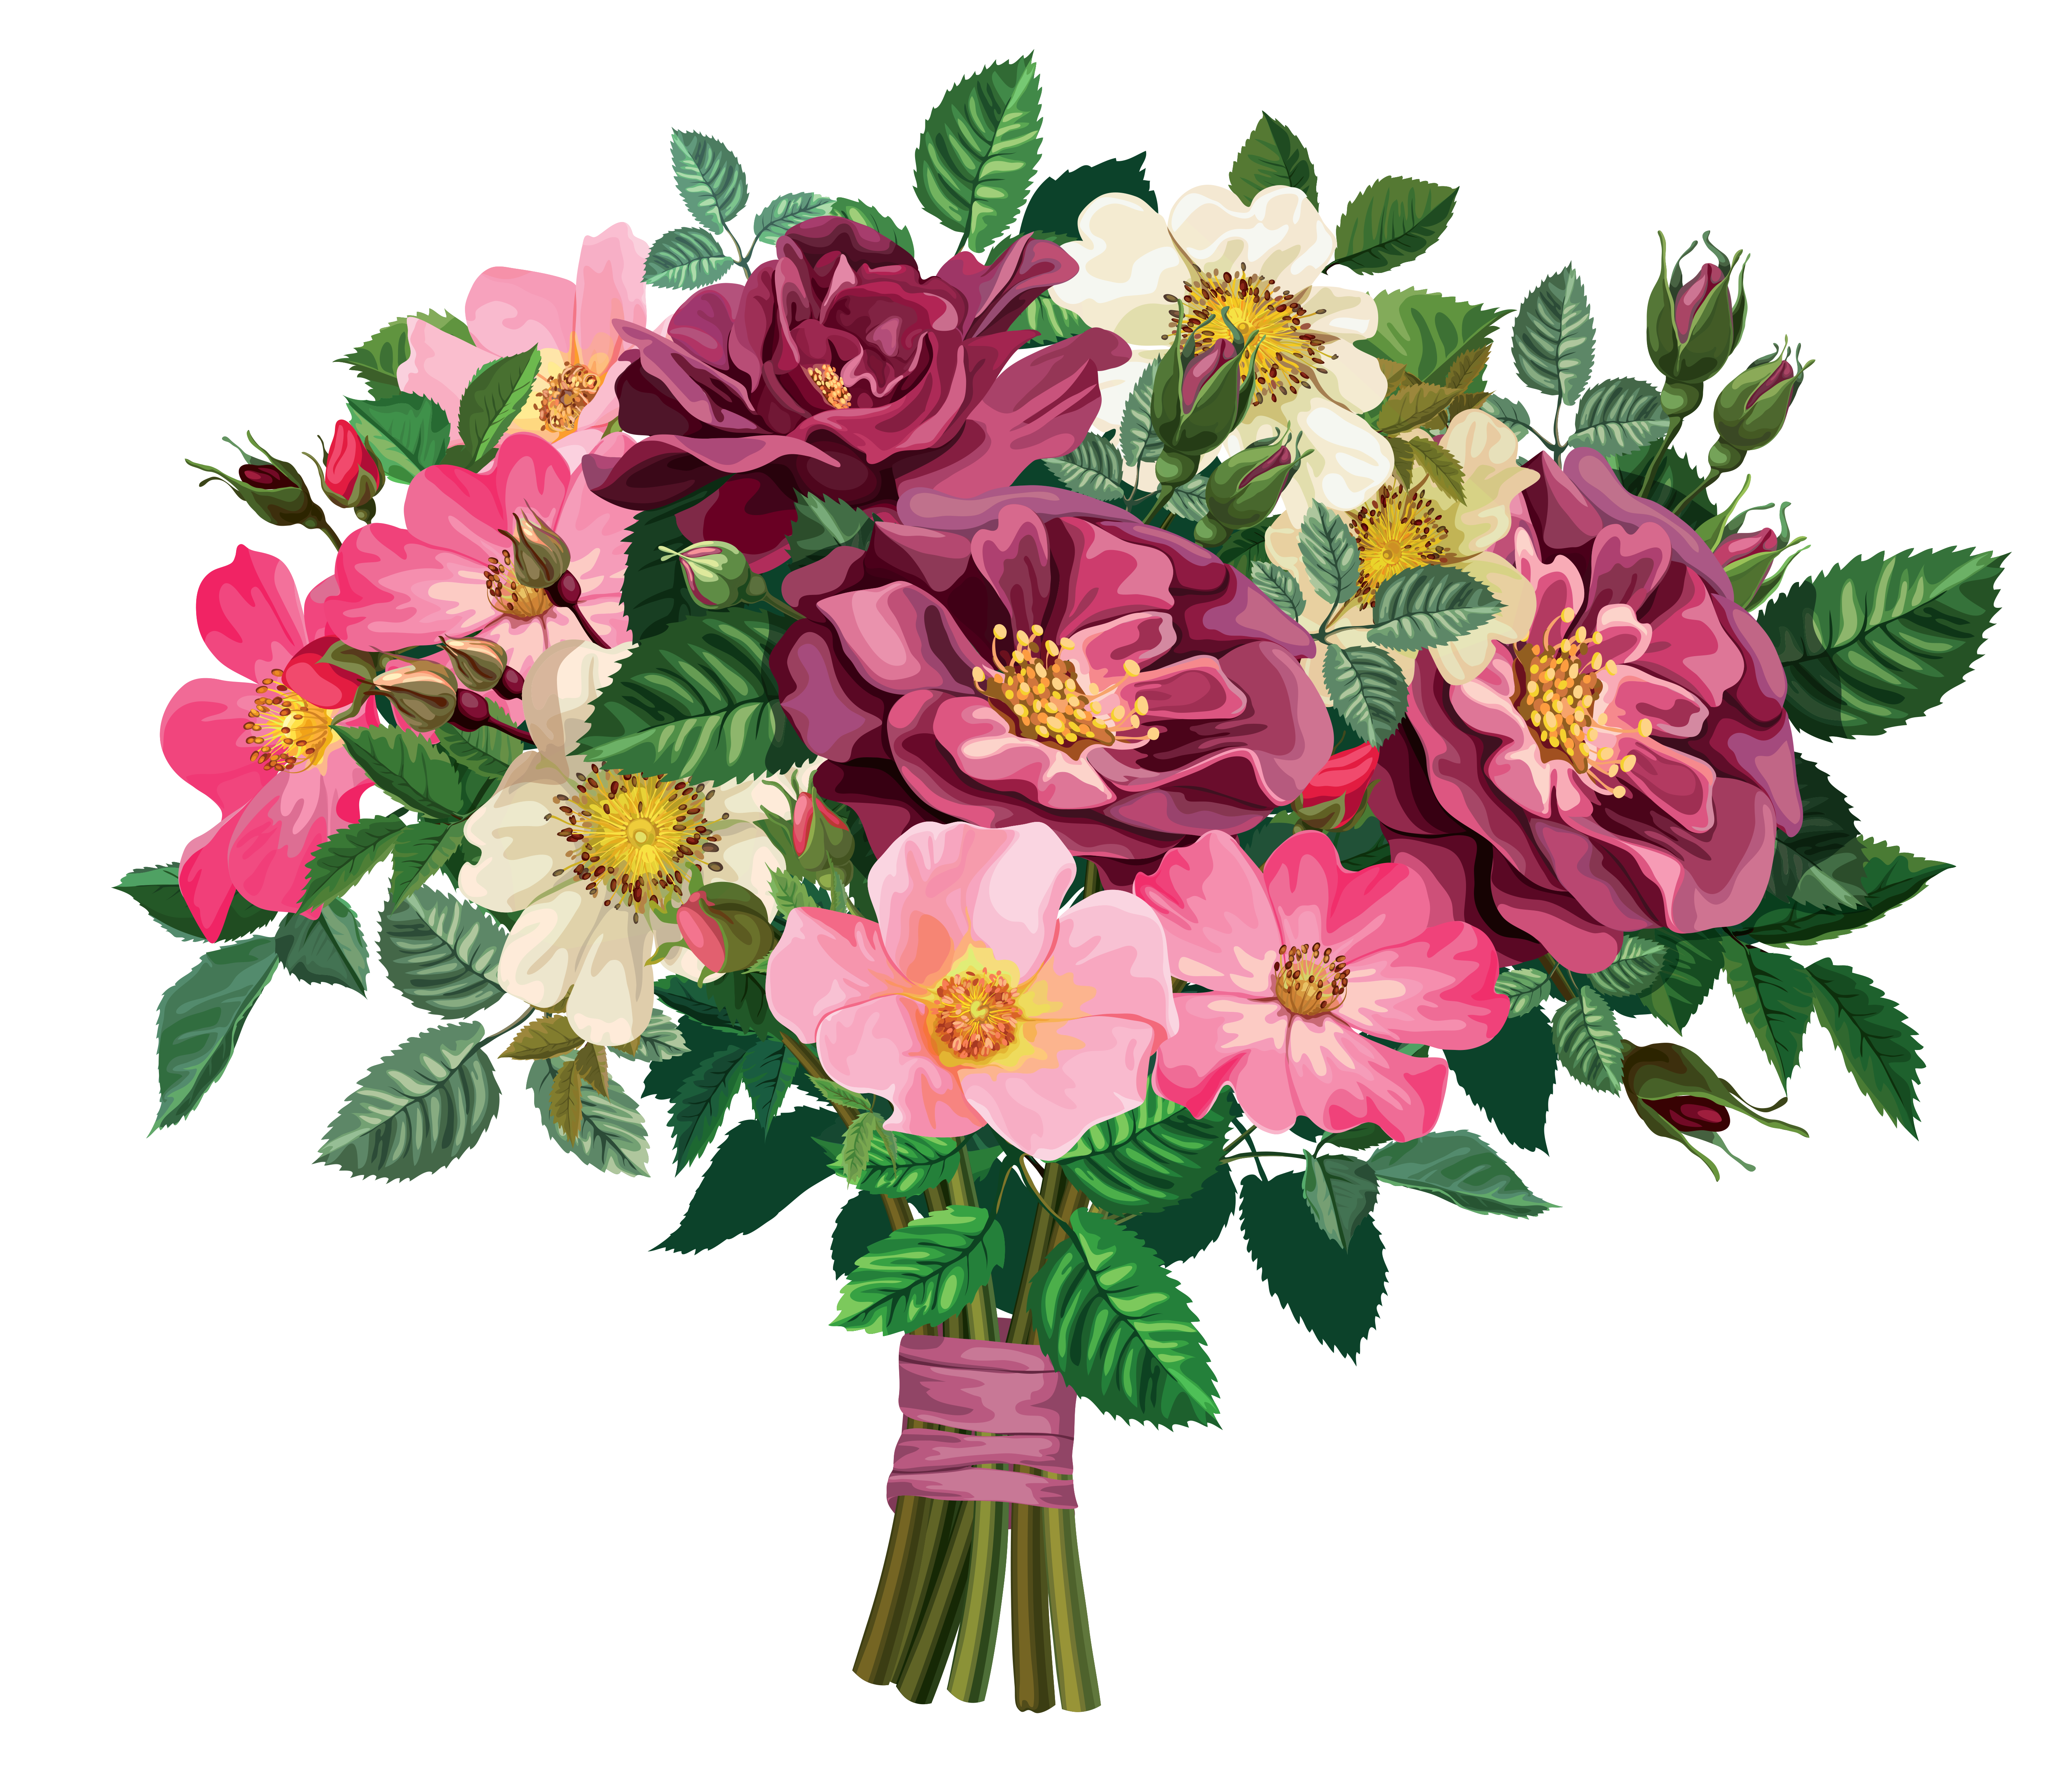 Boque clipart clip freeuse download Rose Bouquet Transparent Clipart | Gallery Yopriceville - High ... clip freeuse download